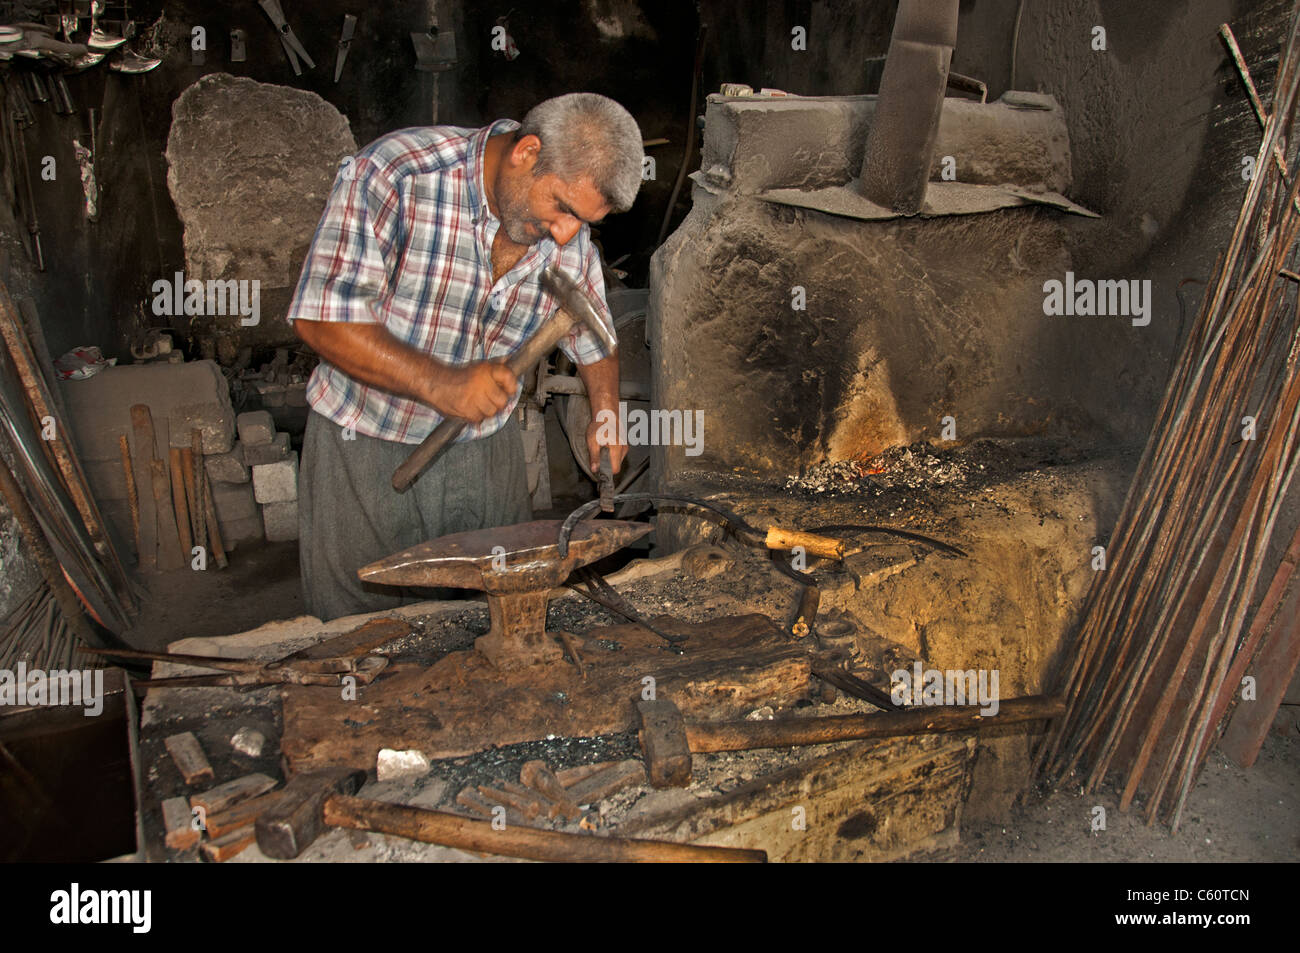 Silifke Turkey Turkish Blacksmith smith forge smithy - Stock Image